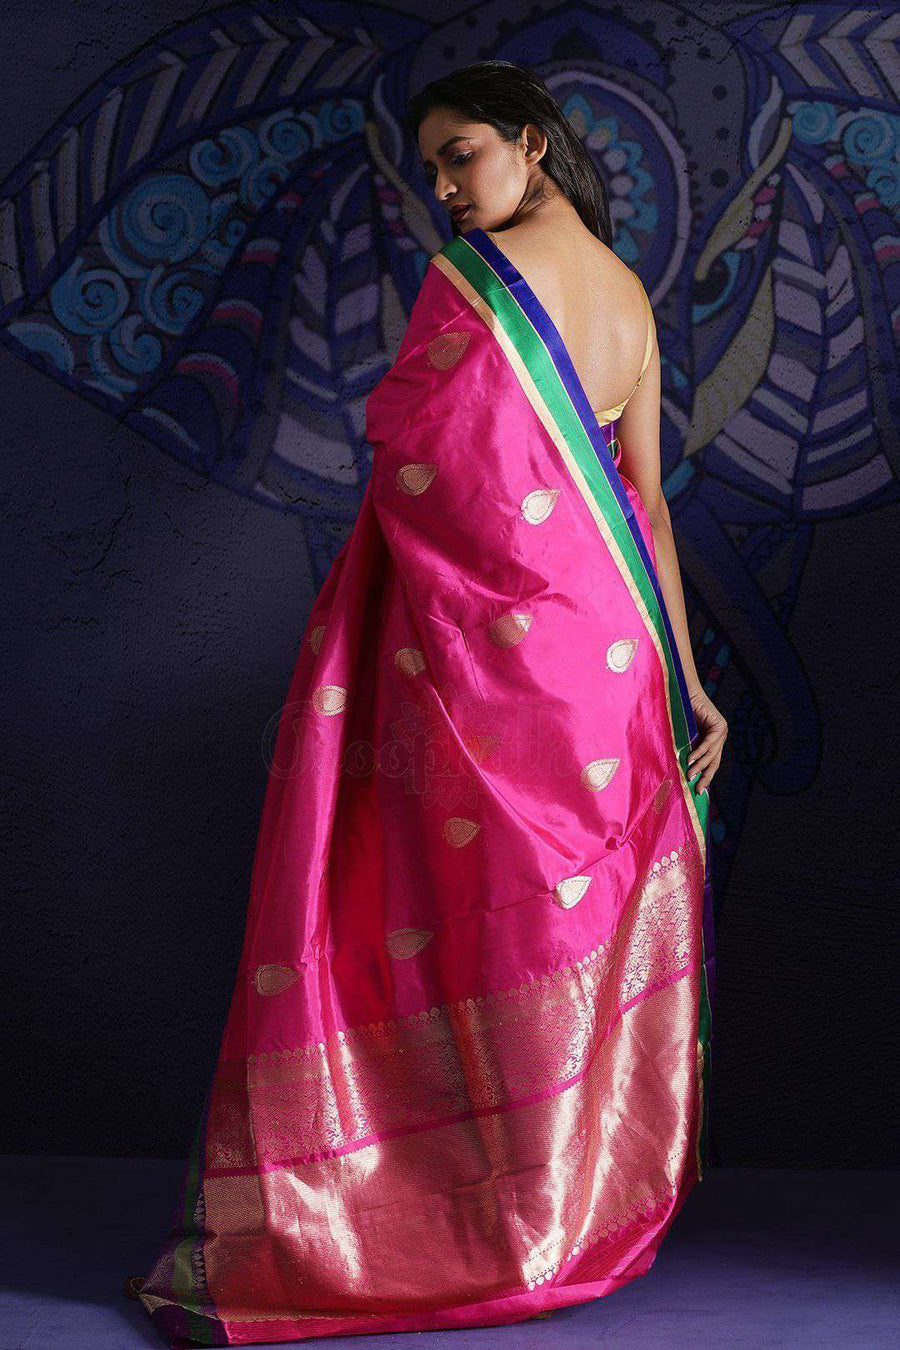 Pink Banaras Silk Saree With Zari Kriti Classics Roopkatha - A Story of Art